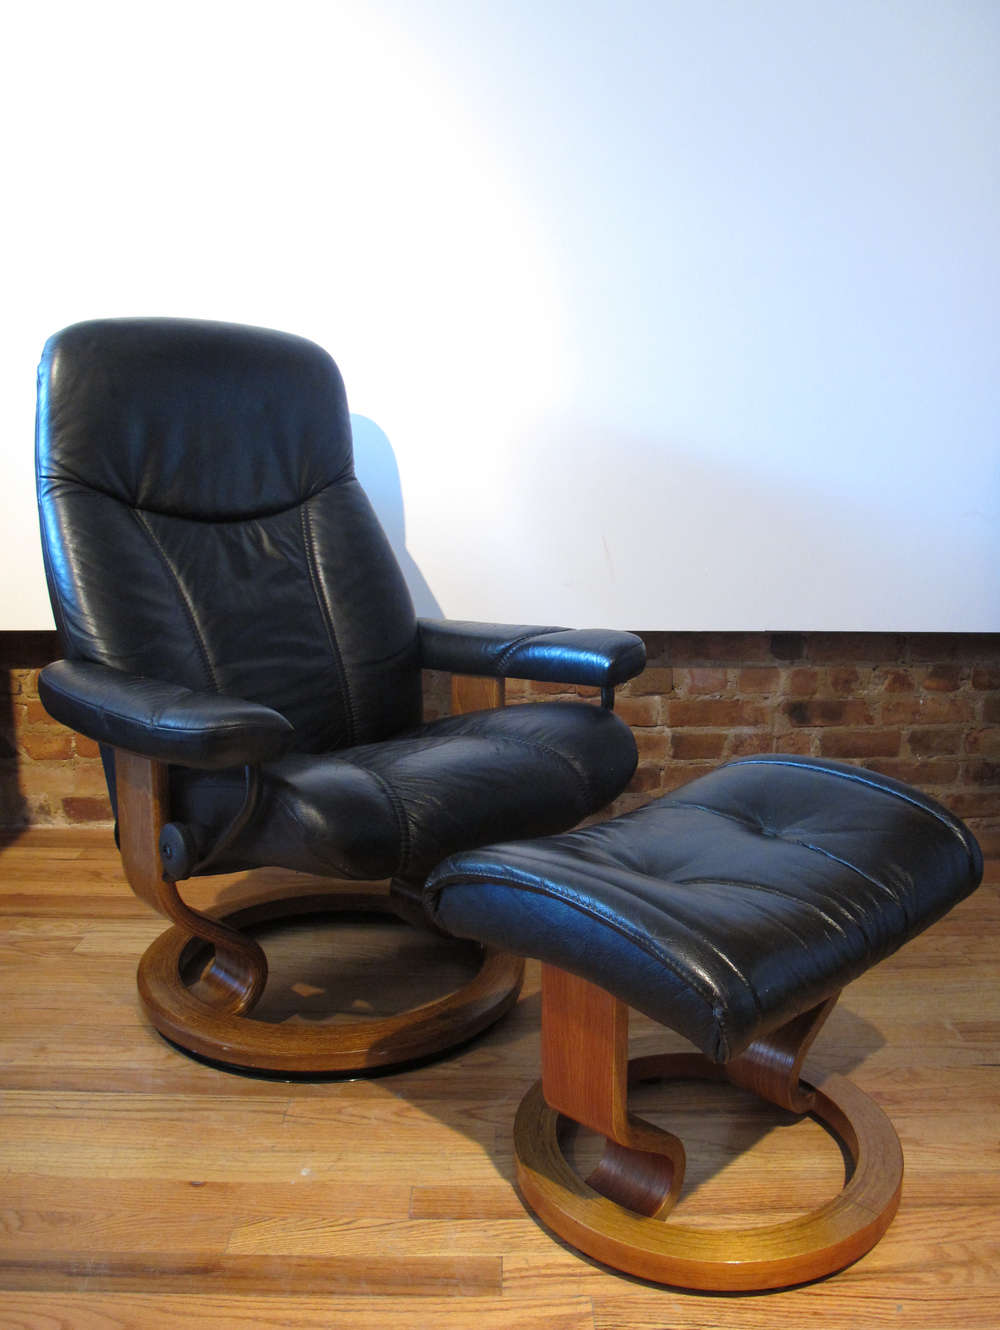 EKORNES STRESSLESS BLACK LEATHER BLACK CHAIR WITH OTTOMAN